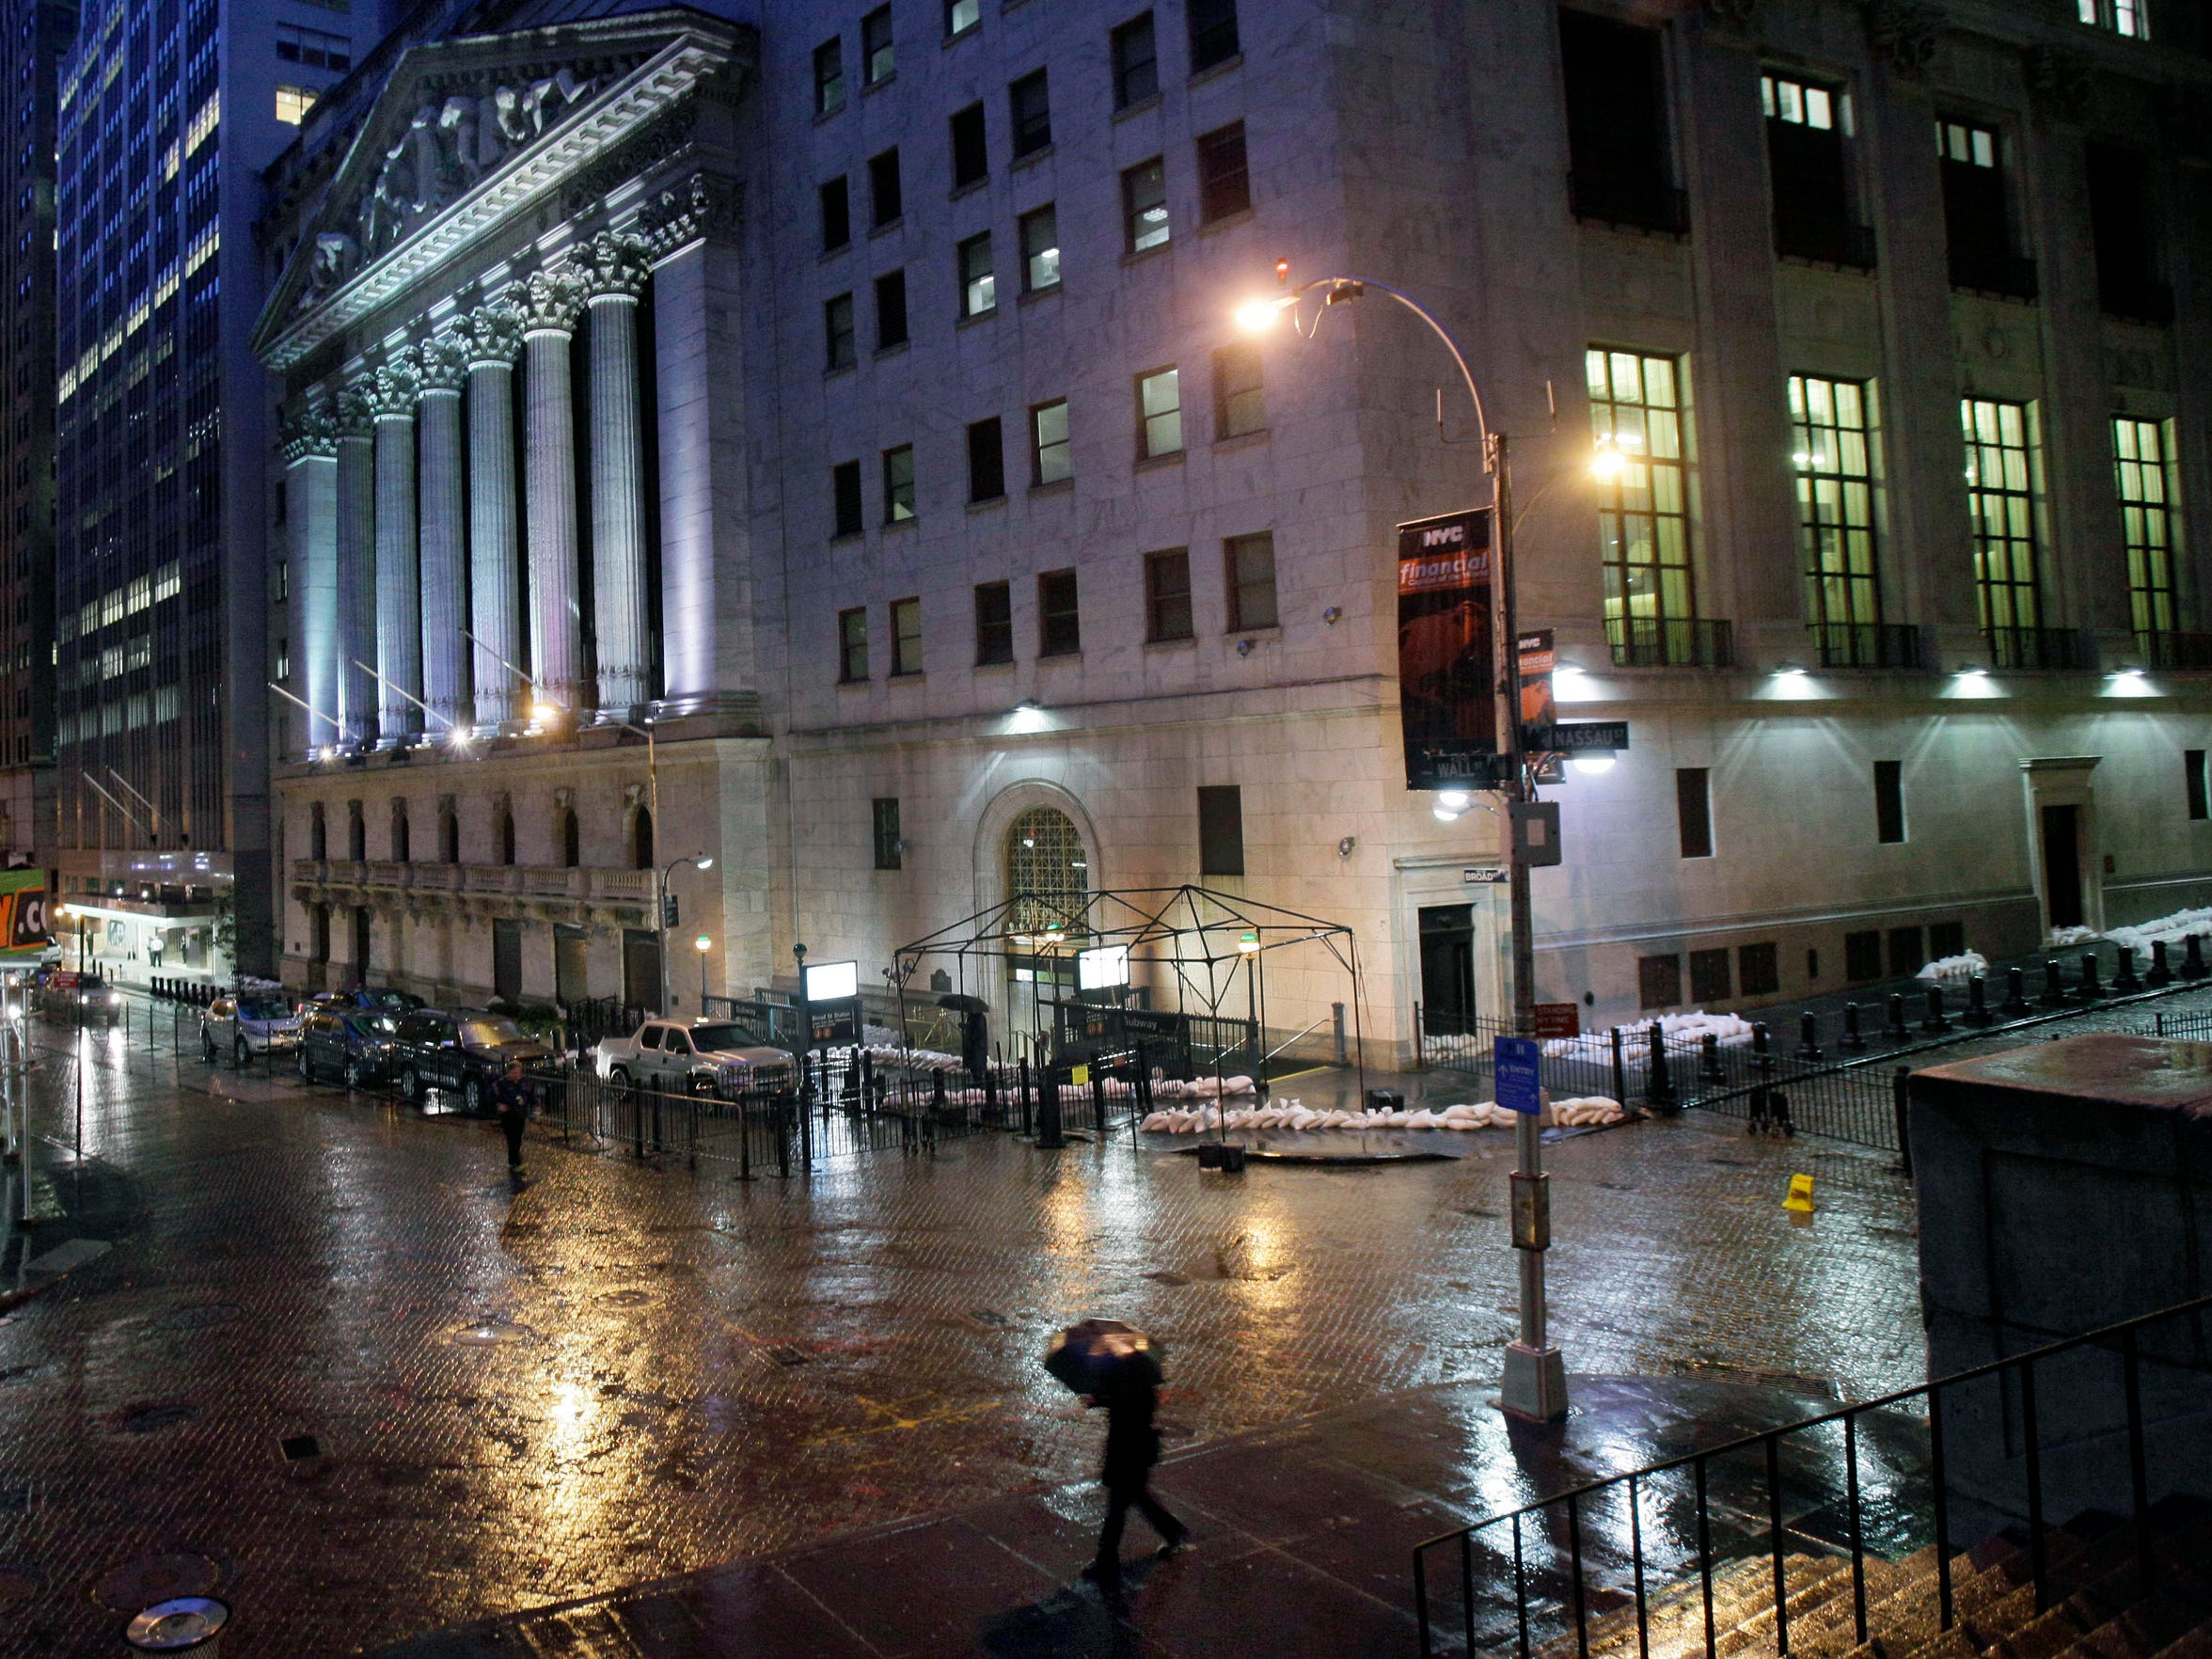 Sandbags protect the front of the New York Stock Exchange from flooding caused by Hurricane Sandy on Oct. 29, 2012.